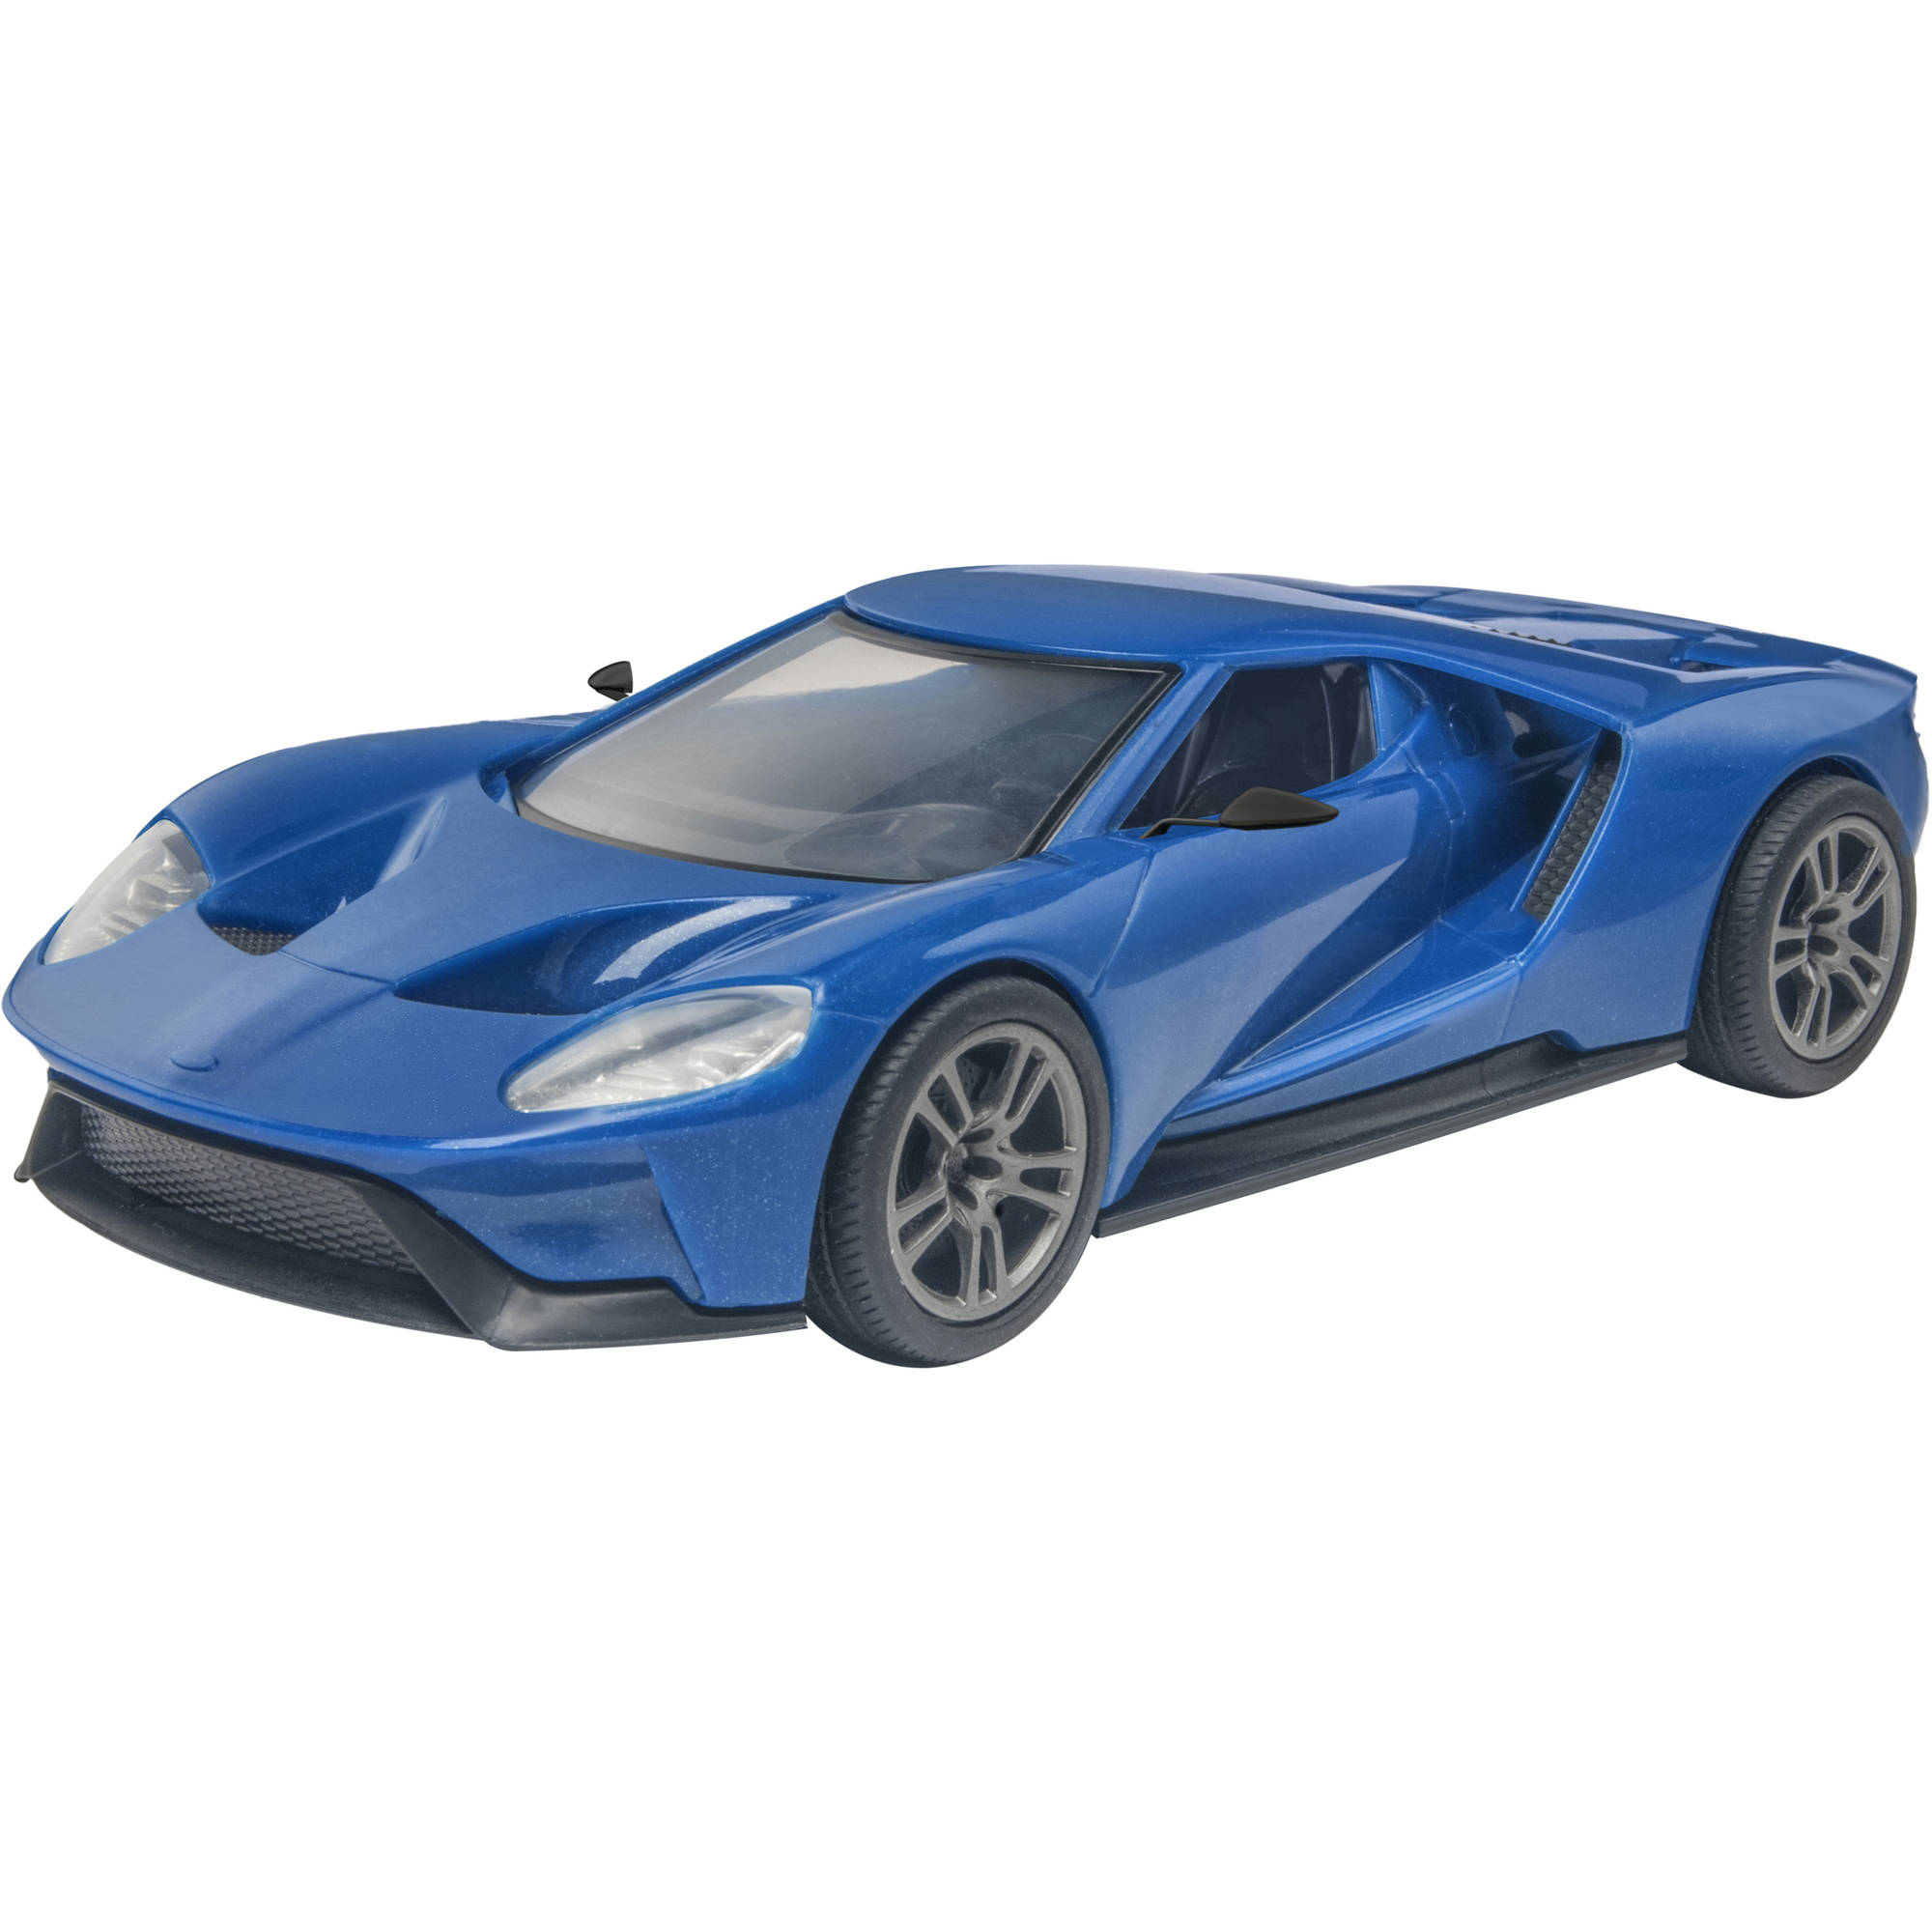 Revell SnapTite 1:24 2017 Ford GT Plastic Model Kit by Revell